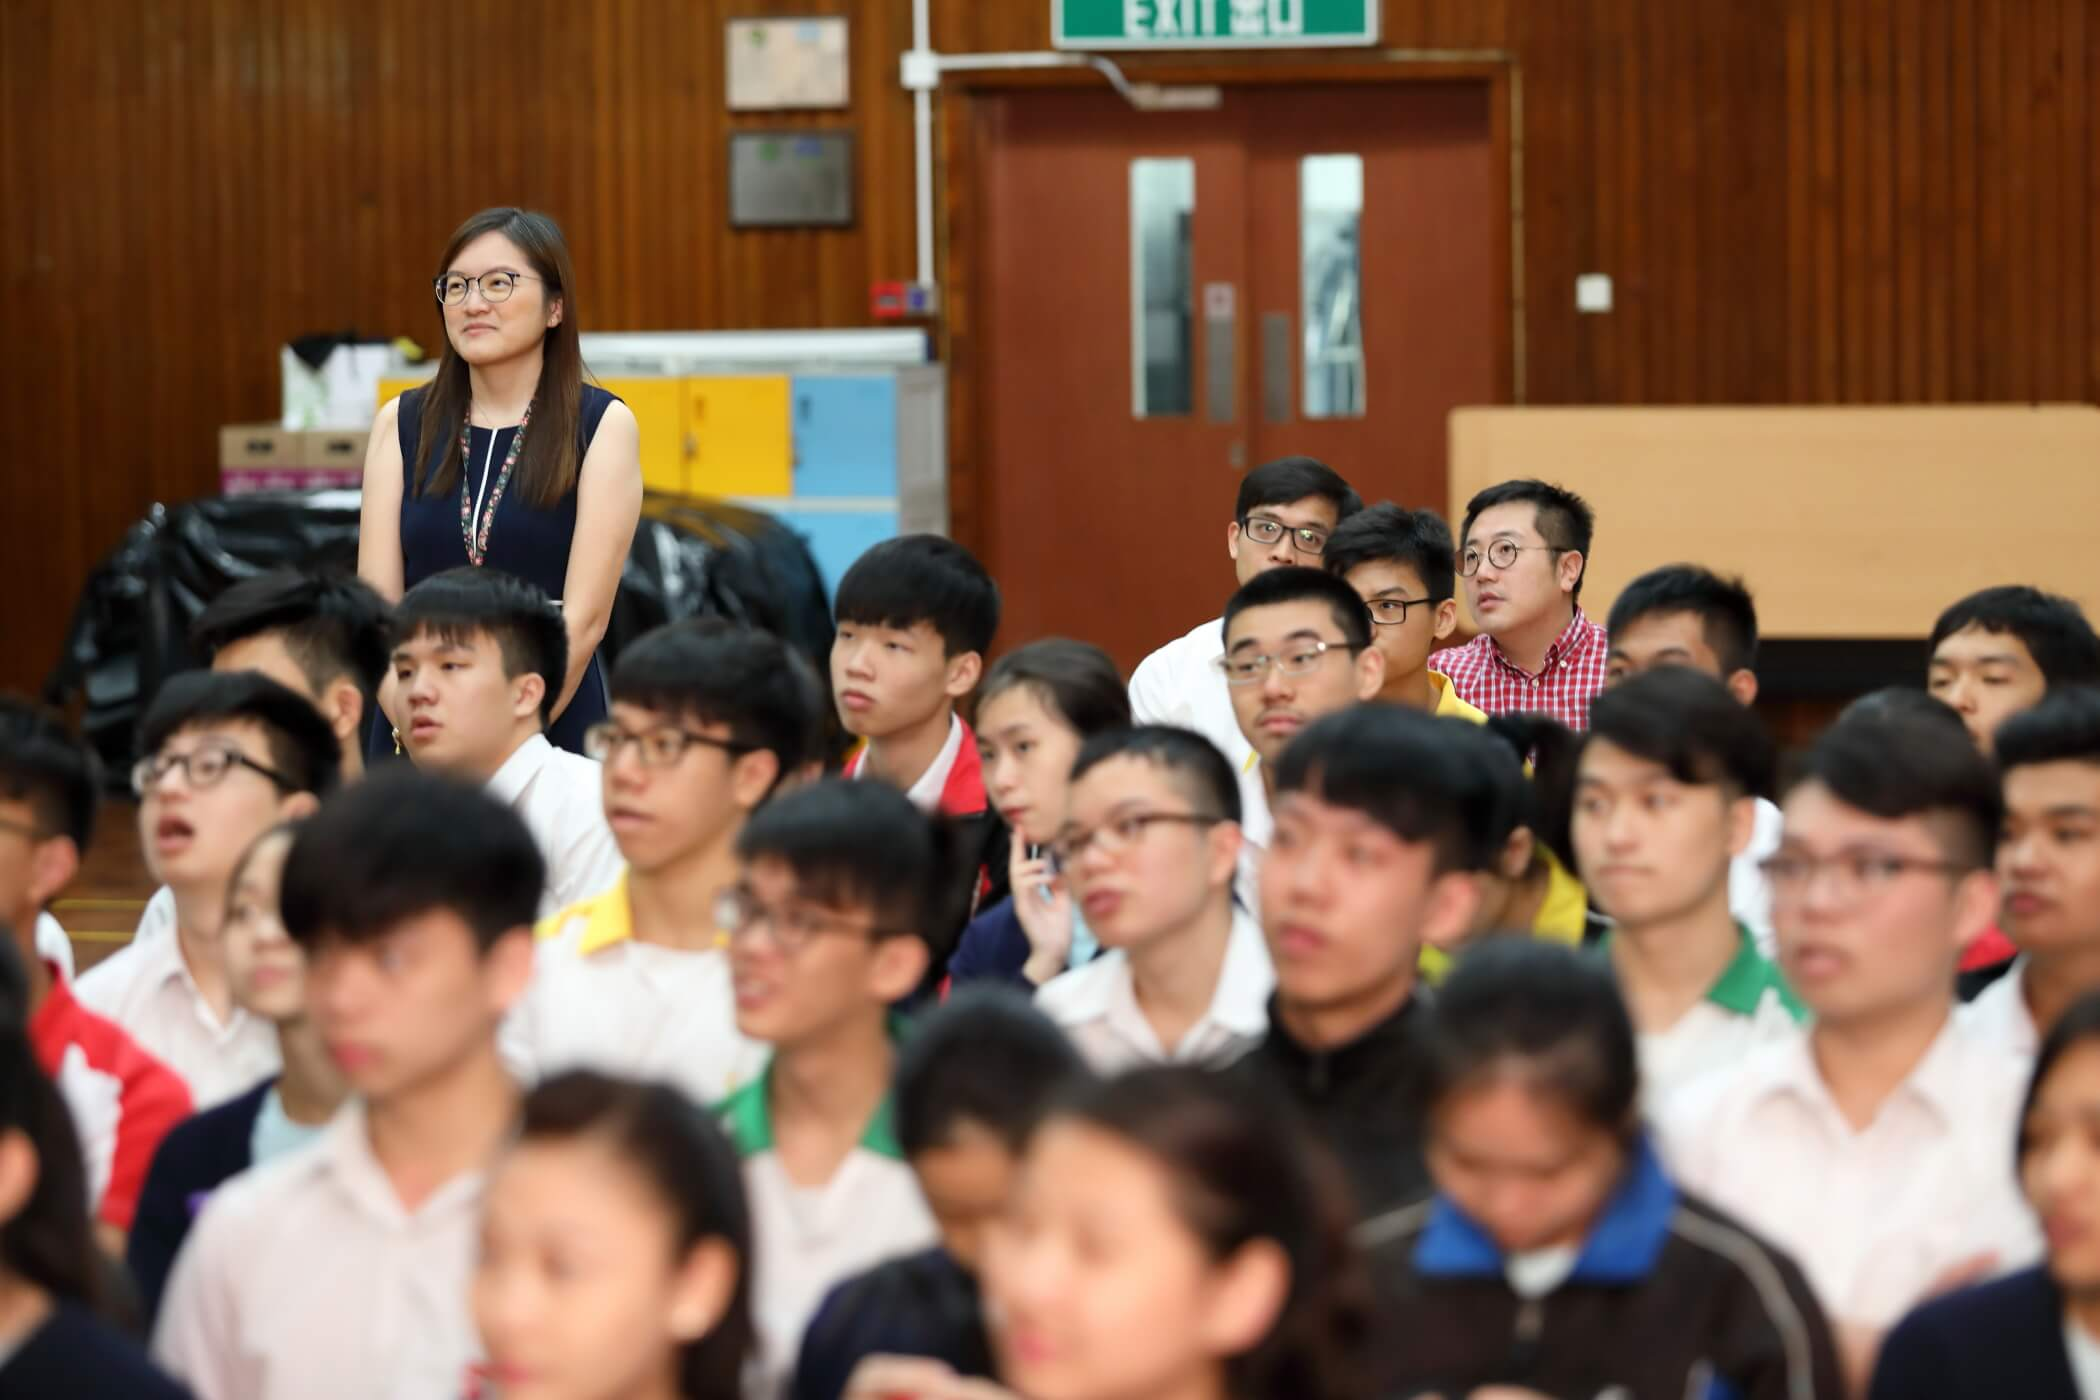 The students listen with attention to Christine Loh